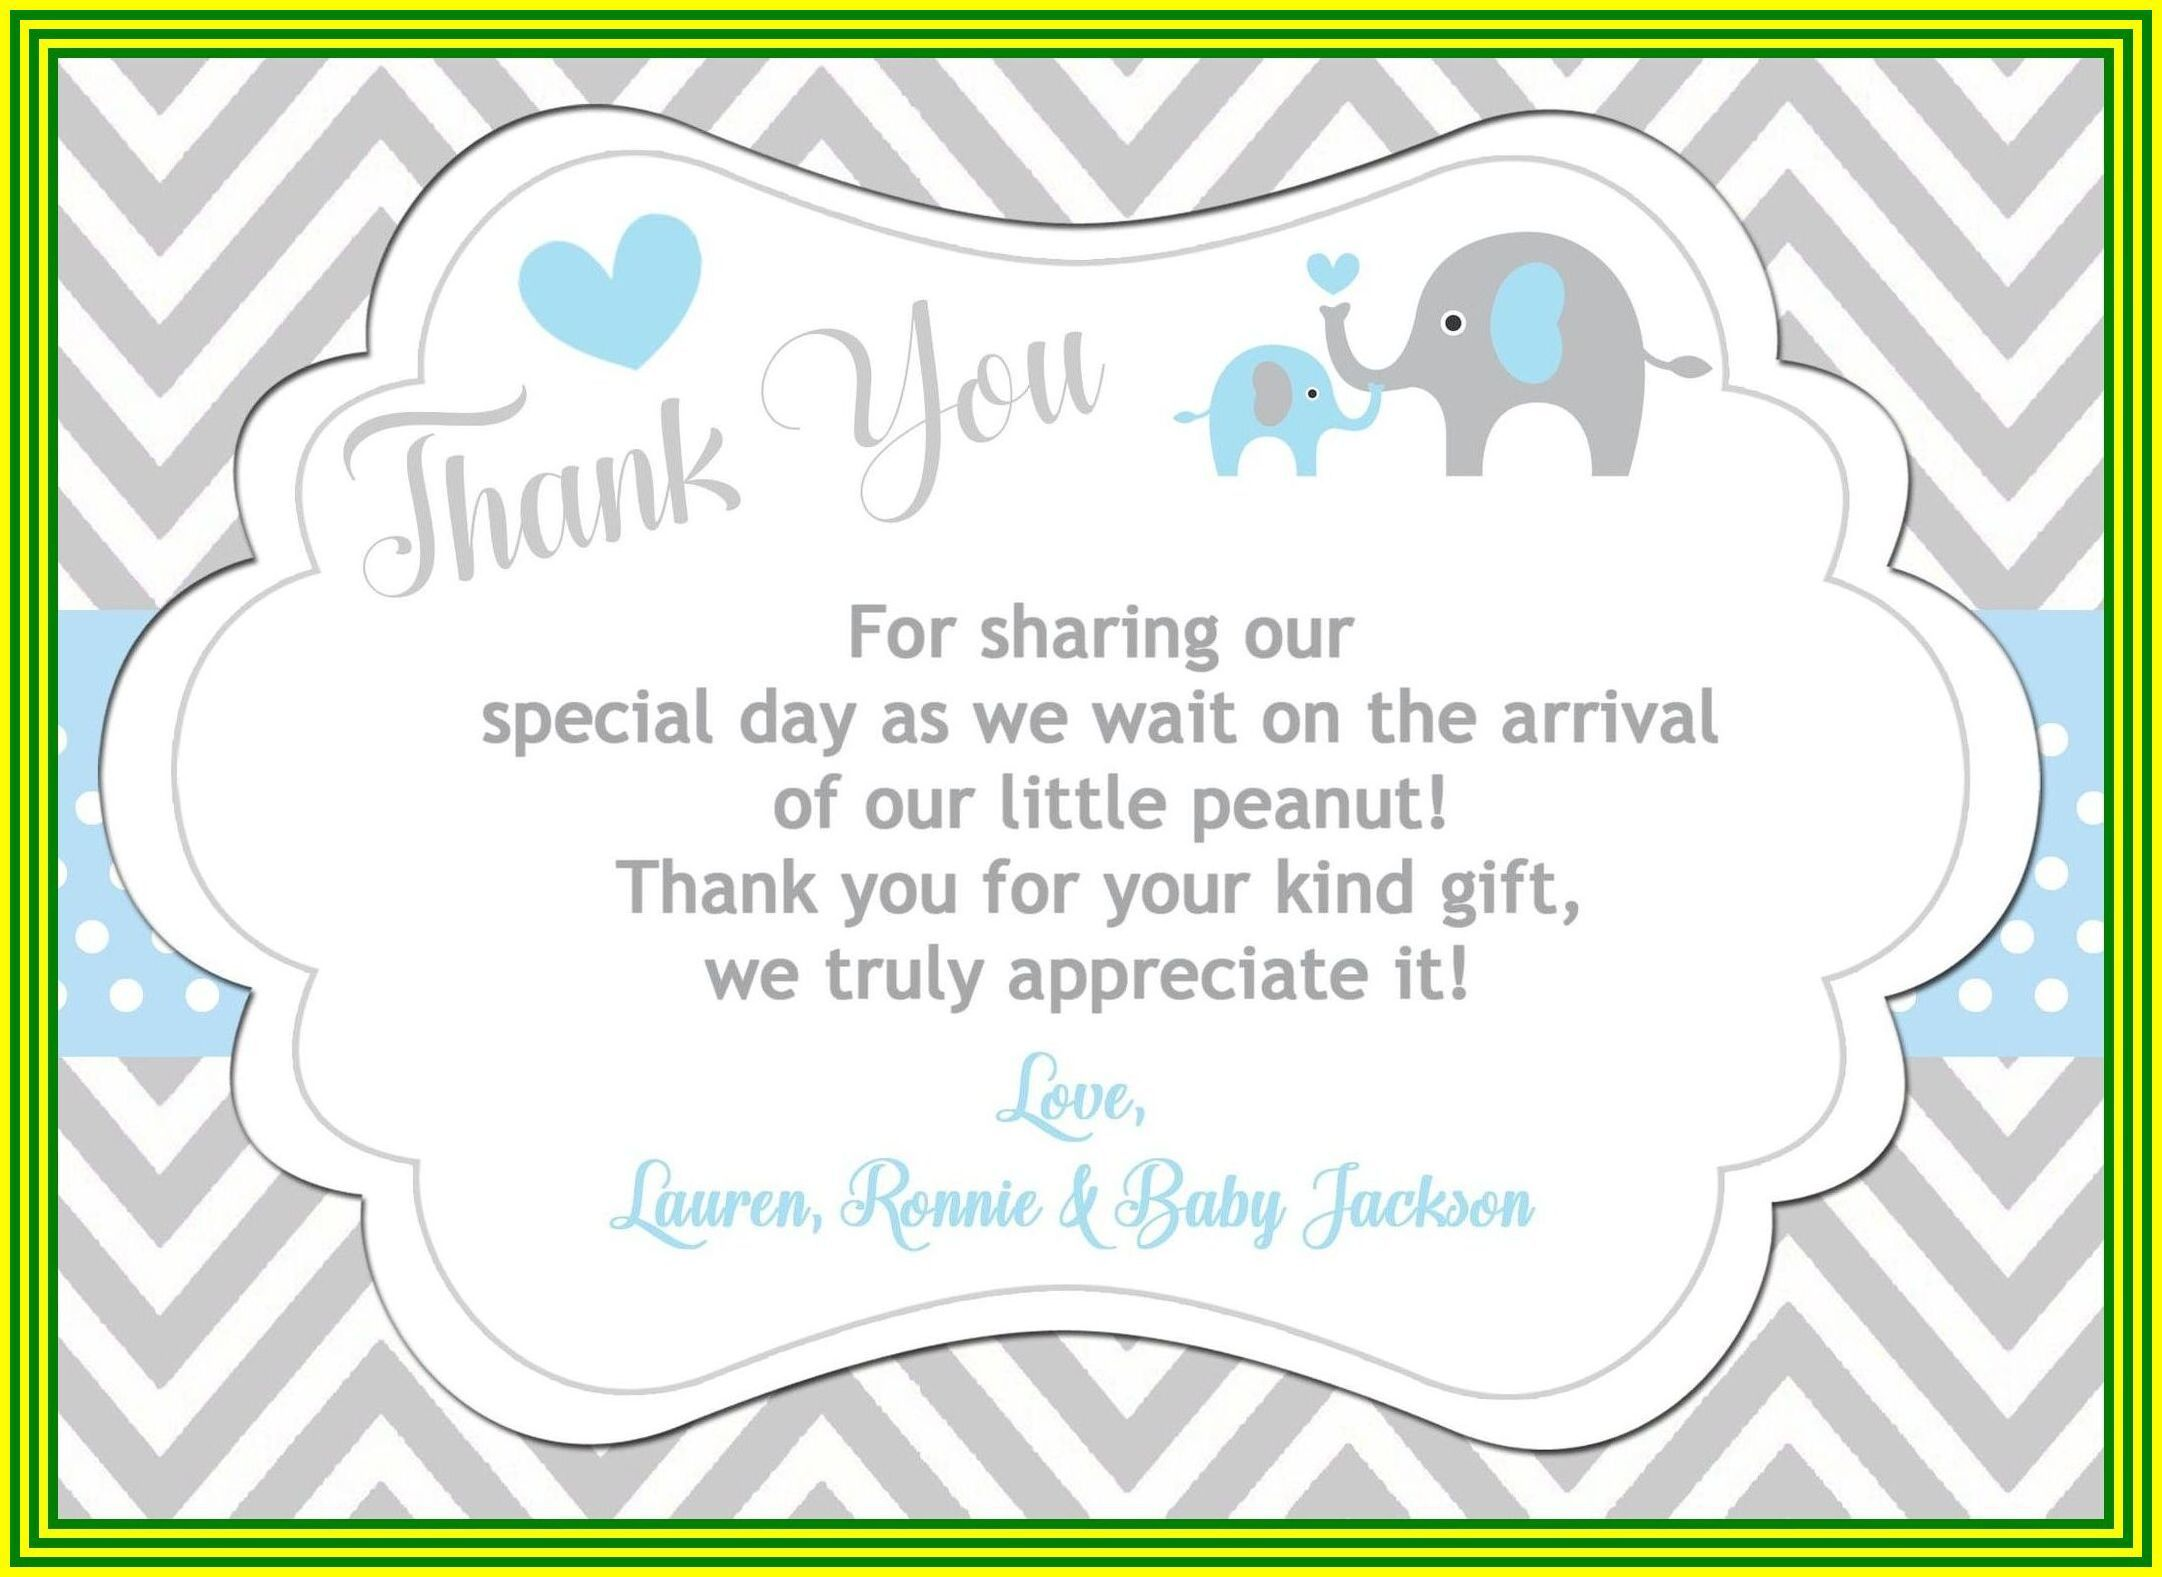 000 Top Thank You Note Wording For Baby Shower Gift High Resolution  Card Sample Example LetterFull